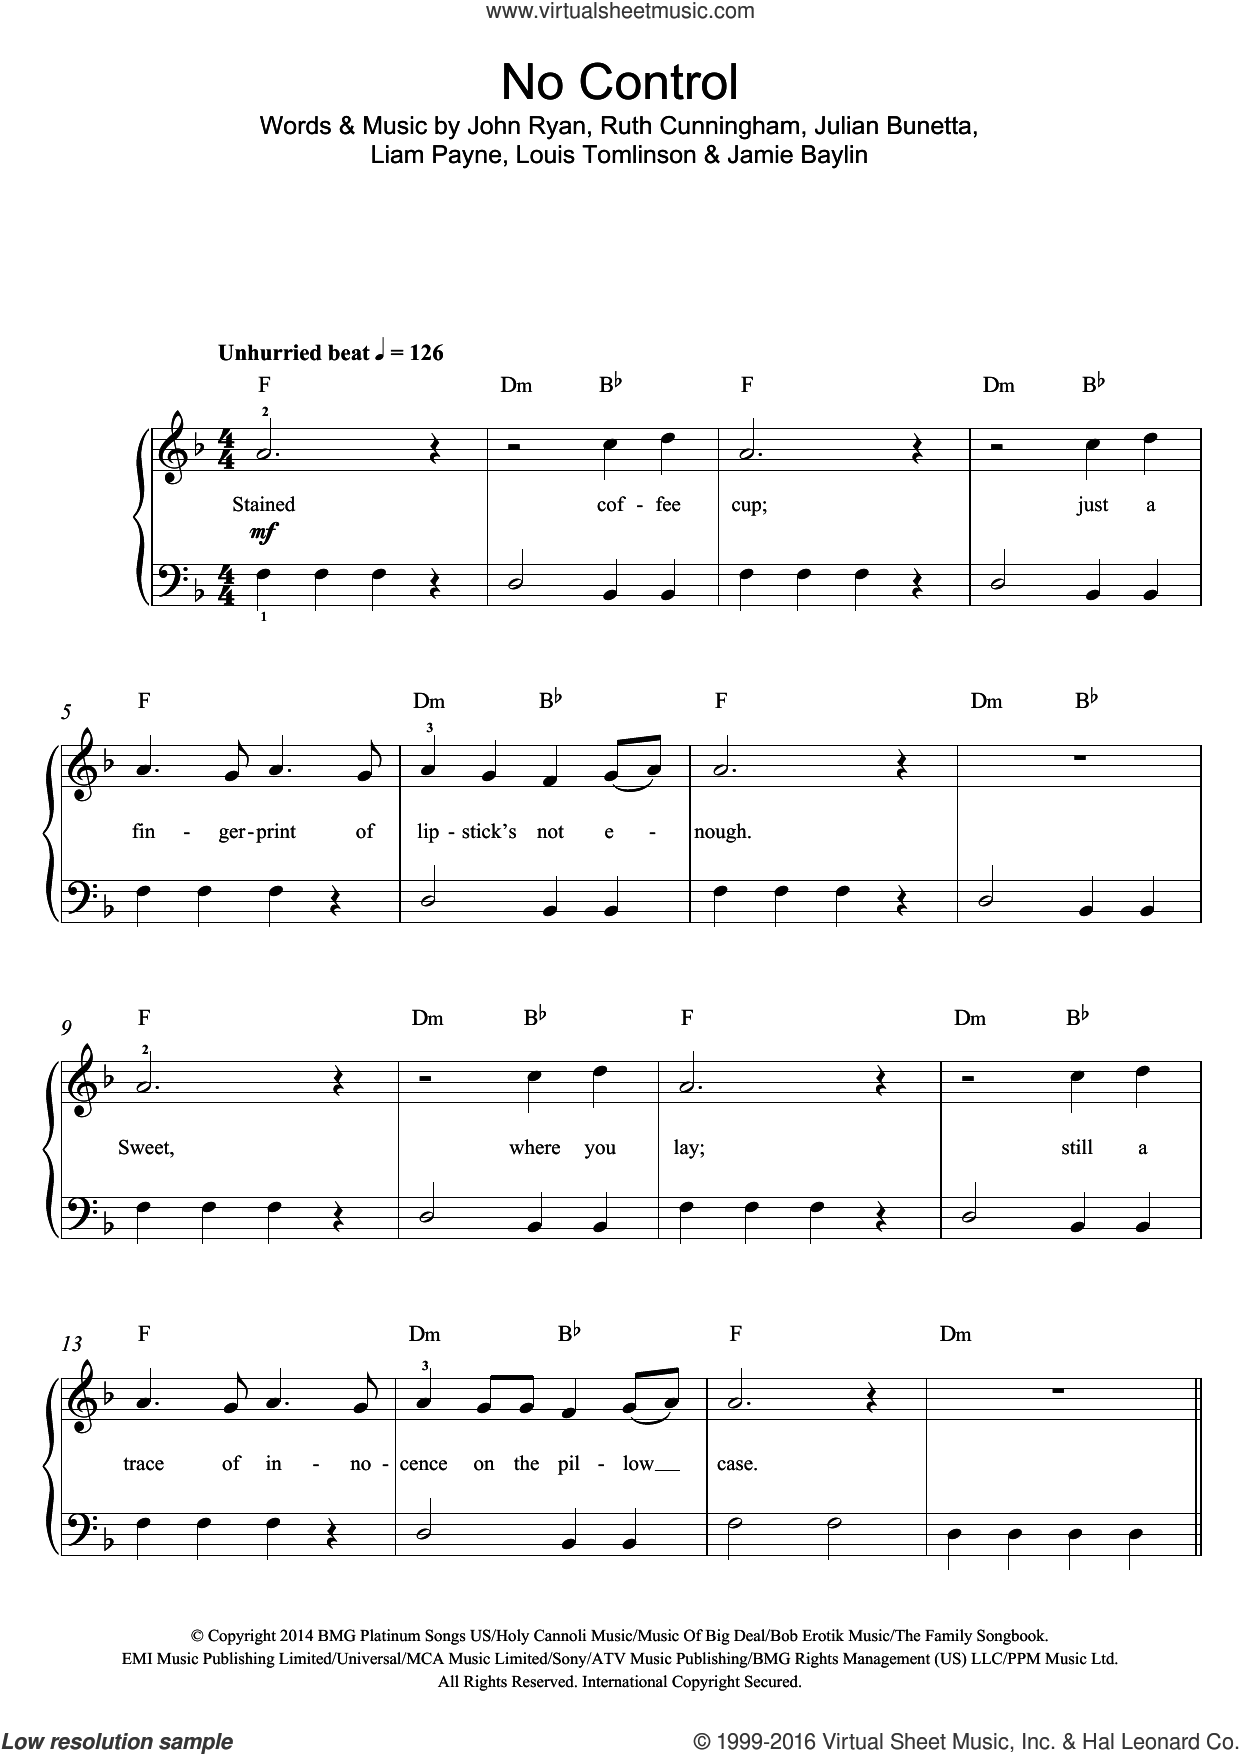 No Control sheet music for voice, piano or guitar by Jamie Baylin, One Direction, John Ryan, Julian Bunetta, Louis Tomlinson and Ruth Cunningham. Score Image Preview.